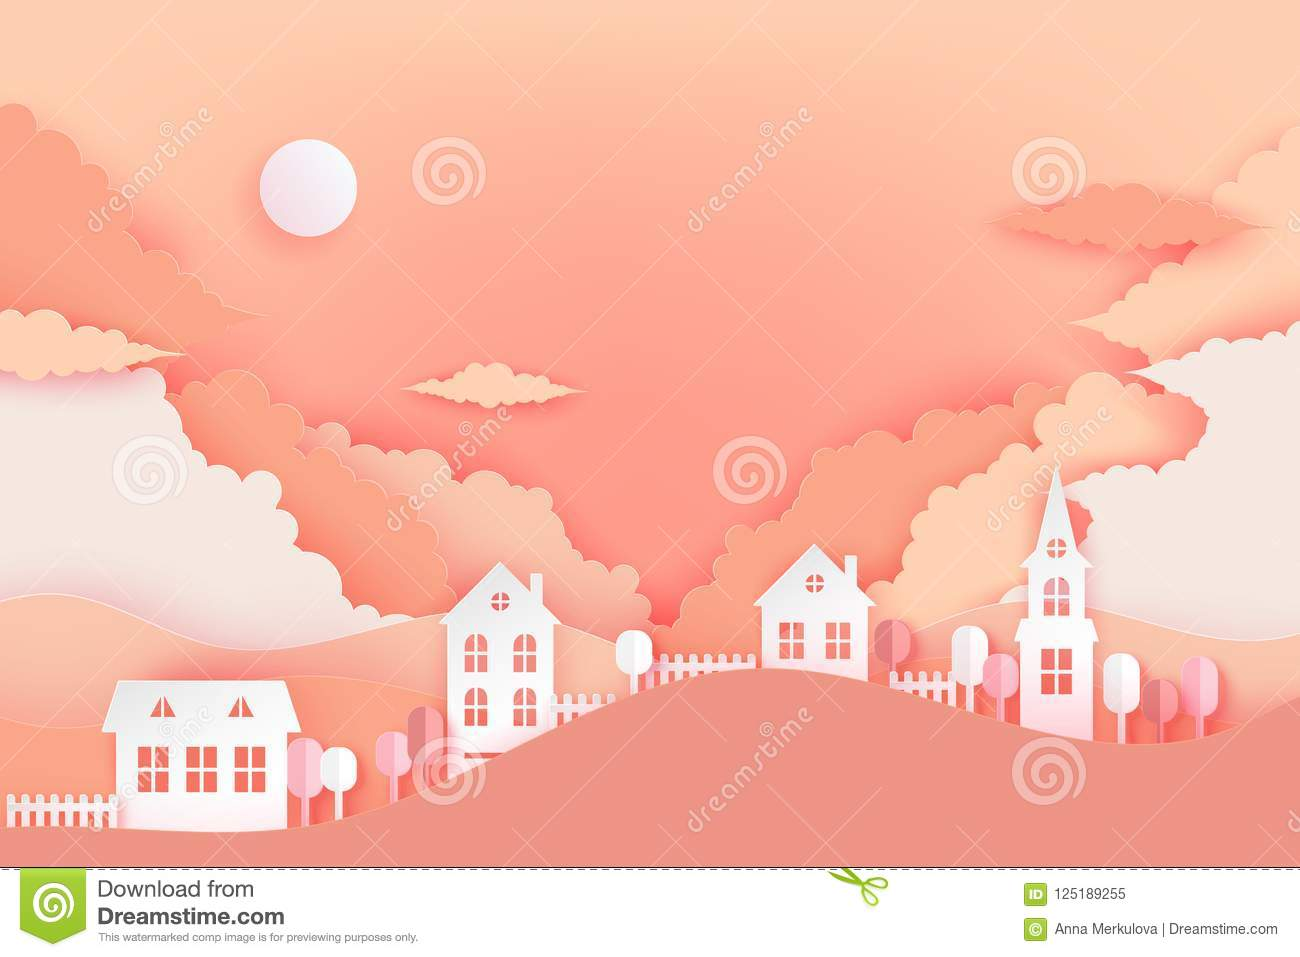 Urban Countryside Landscape Village With Cute Paper Houses